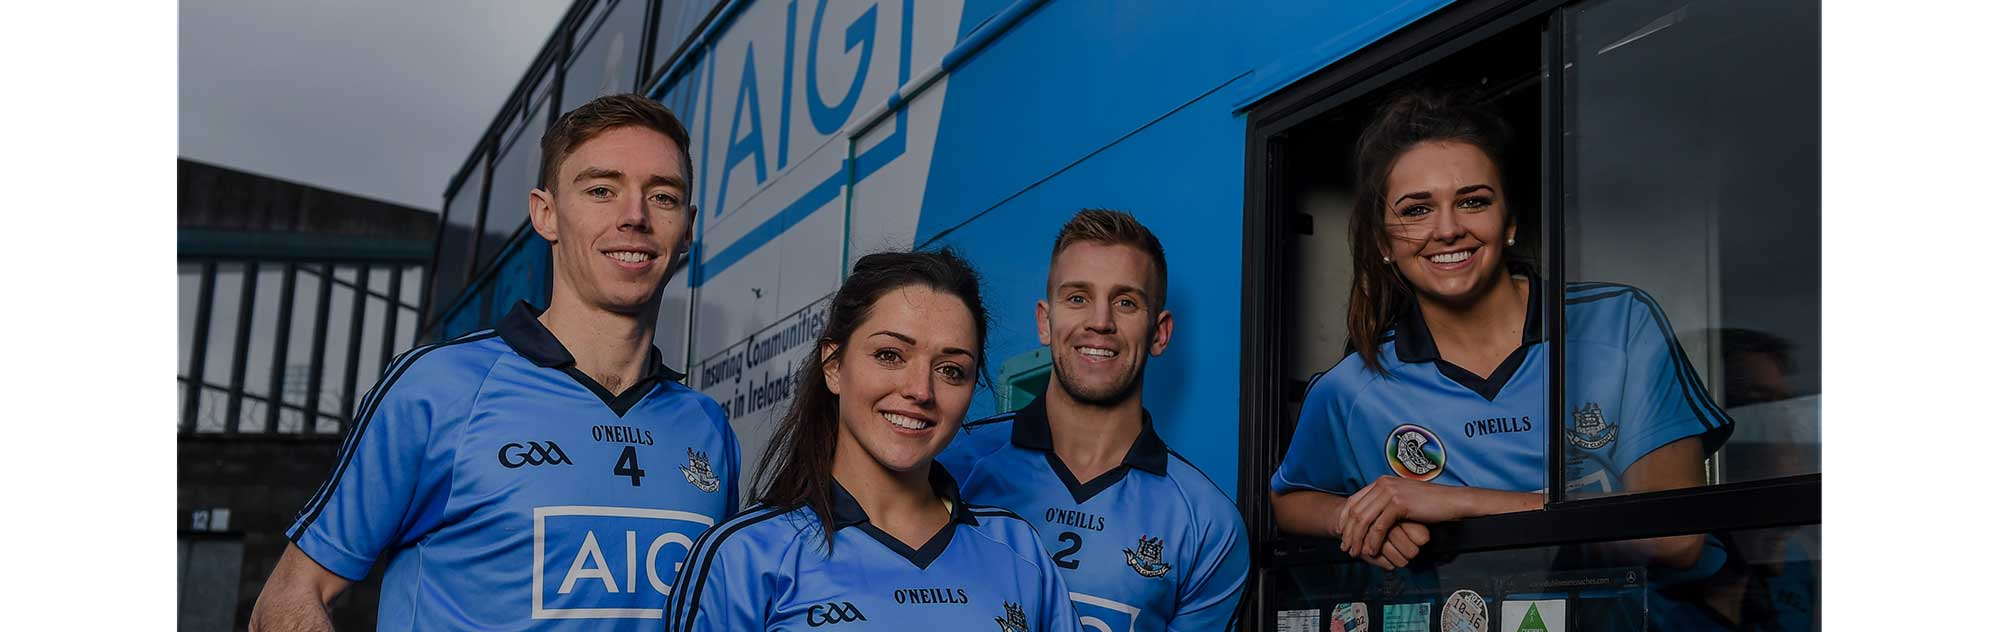 Dublin GAA and AIG Ireland